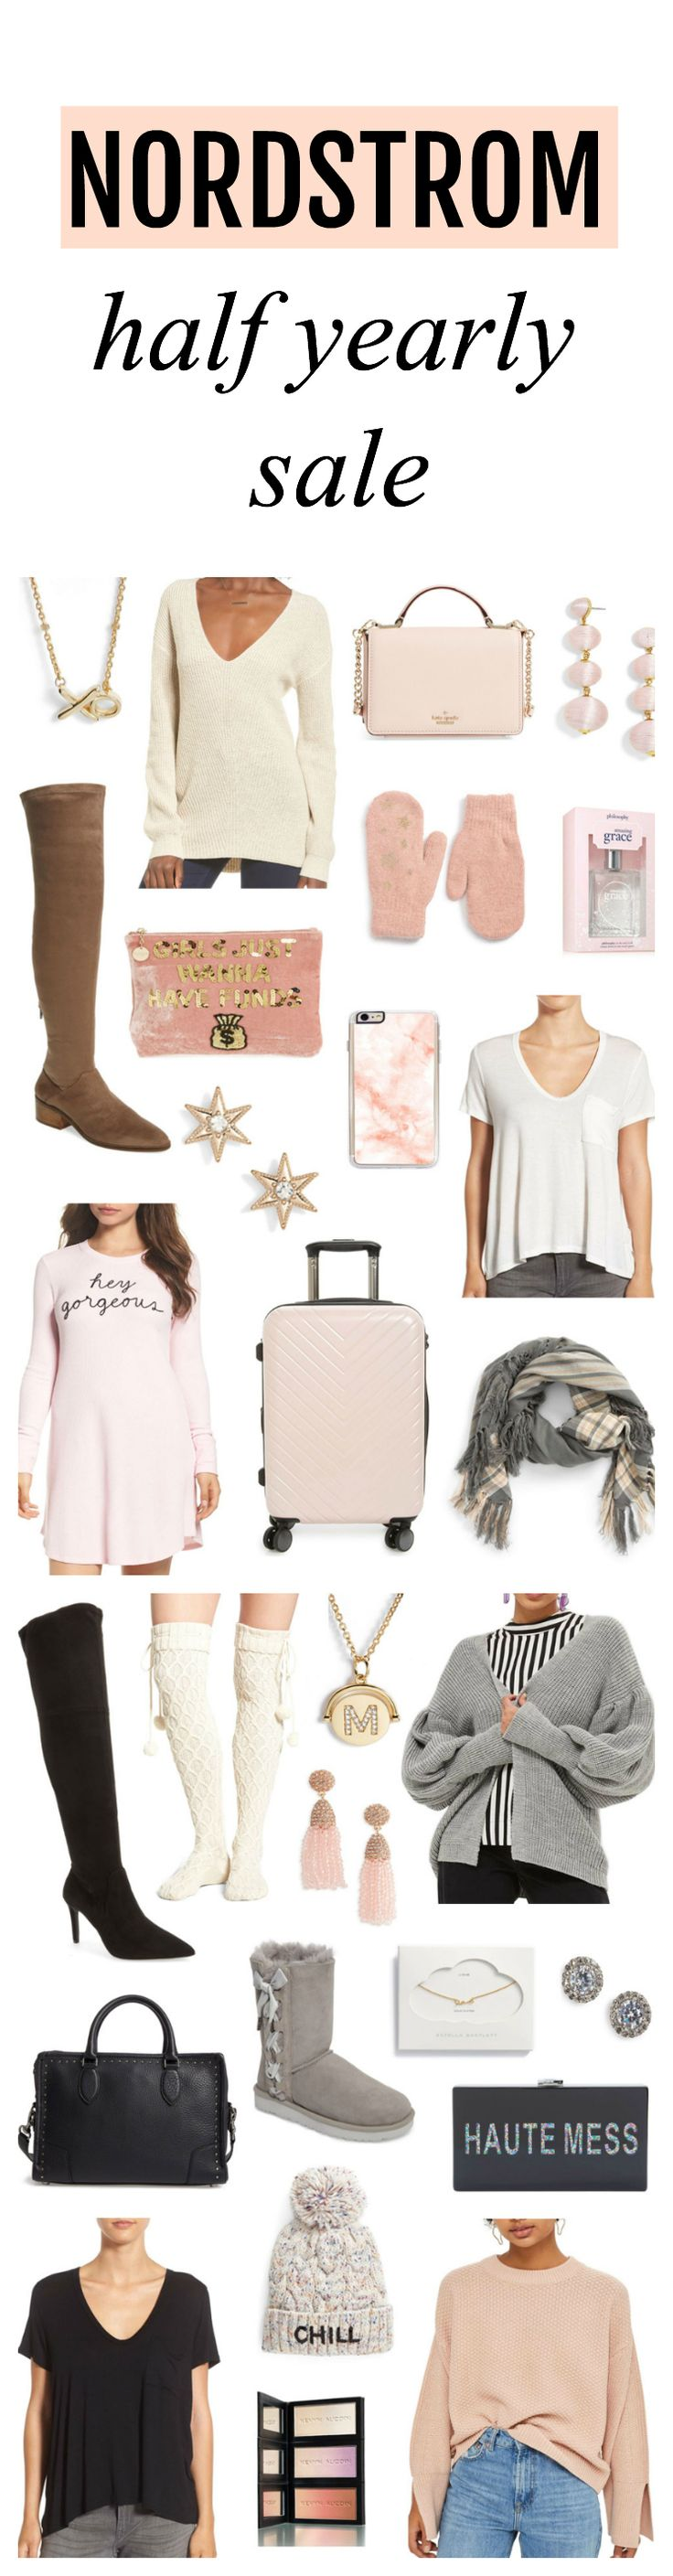 Things are selling out QUICK! Sharing the best of the Nordstrom Half Yearly sale! Fashion blogger Mash Elle shares the best fashion and beauty sale items from the Nordstrom Half Yearly Sale. Brands include Kate Spade, Kendra Scott, Steve Madden, BP, Tory Burch, Free People and more!